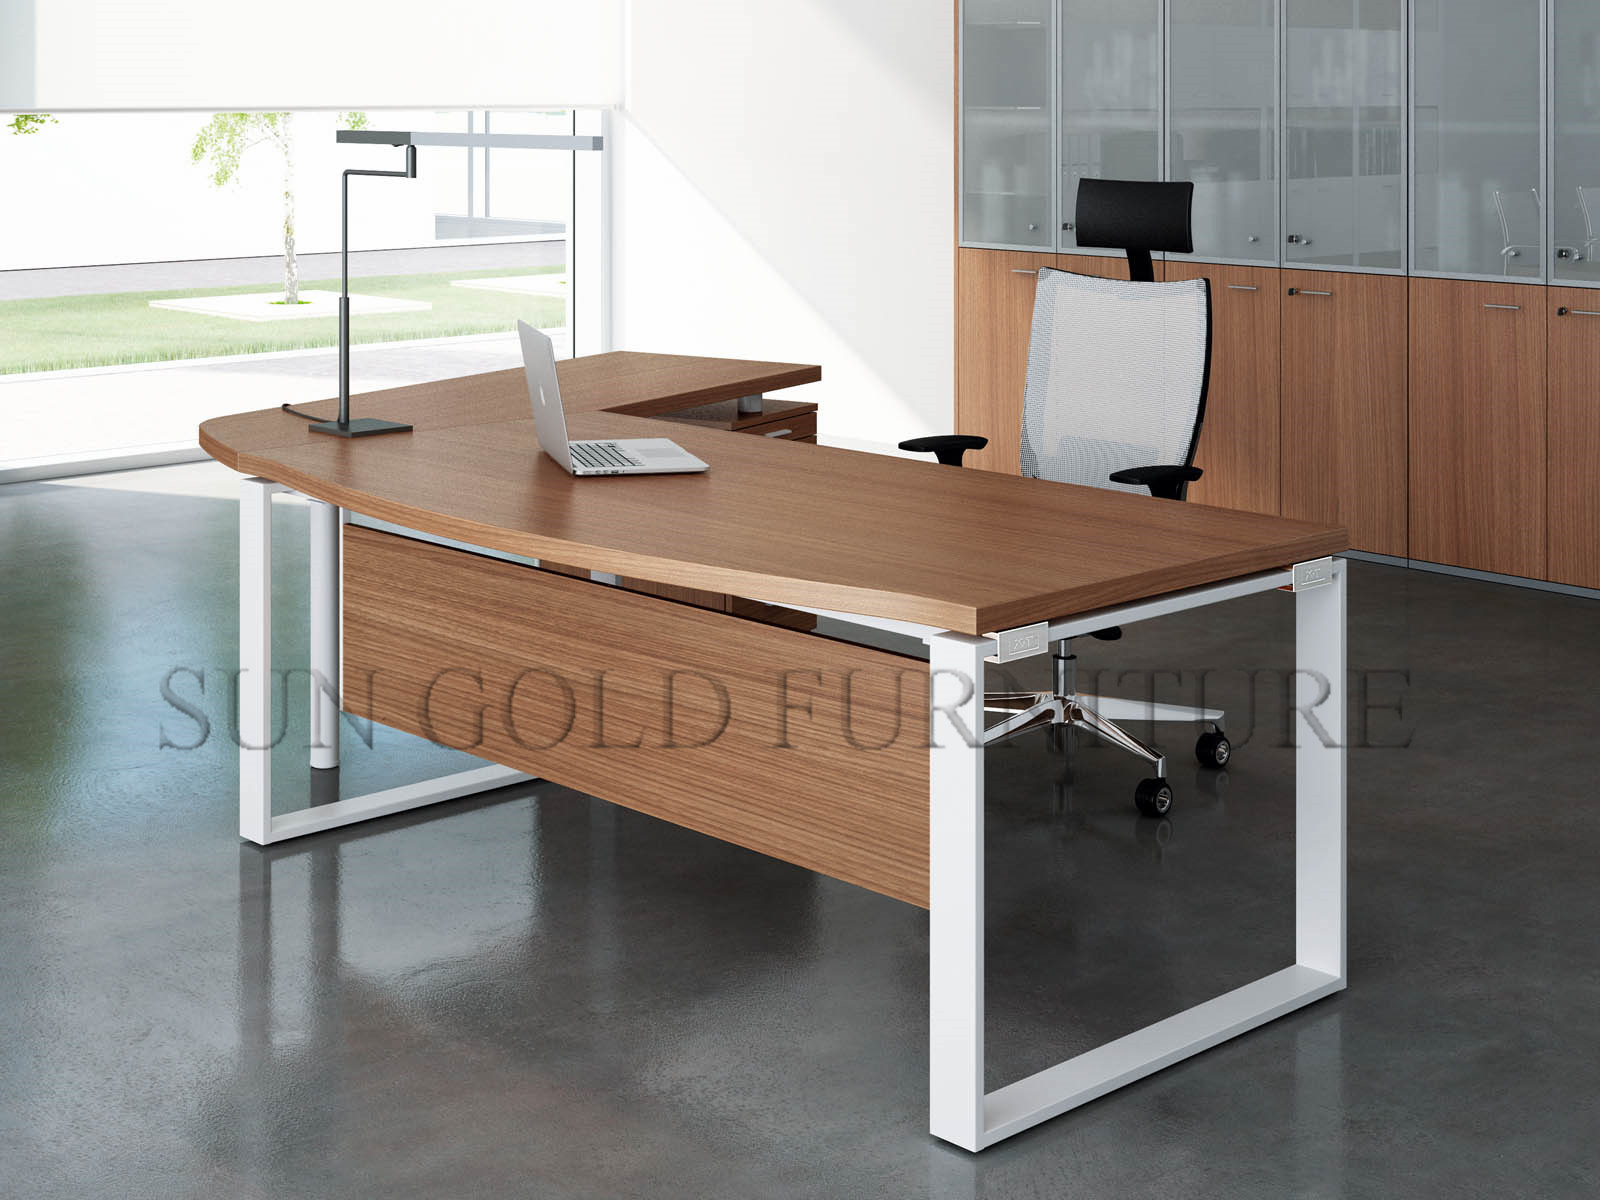 furniture the co executive cornerstone modern desk sauder product